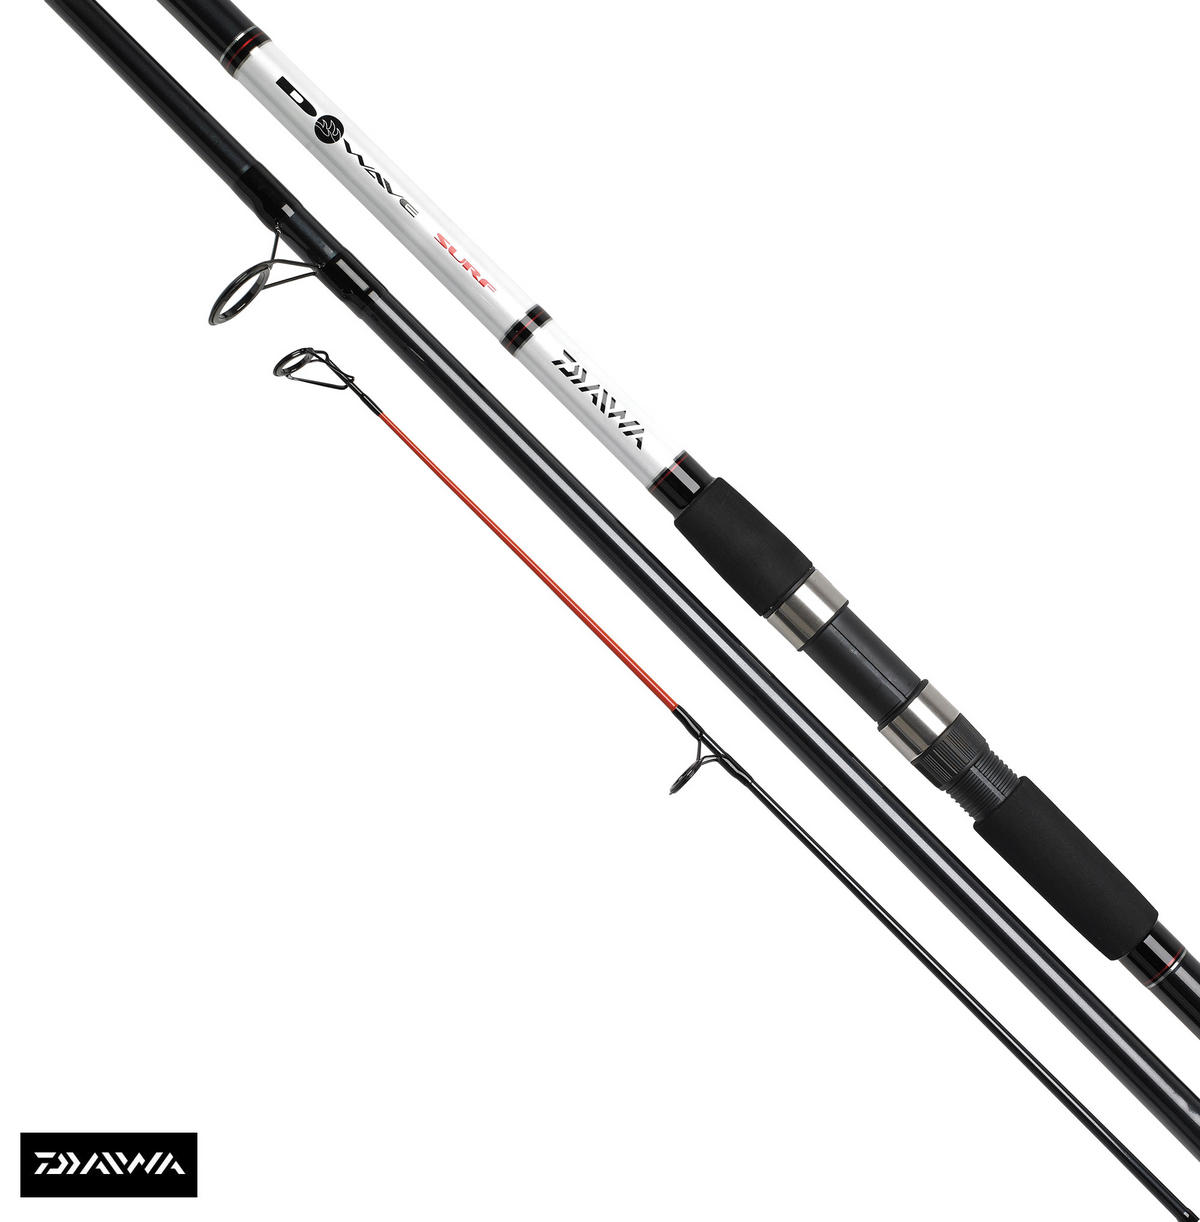 New Daiwa D Wave Surf 12ft 3 Piece 4-8oz Beach Fishing Rod Model No. DWS1203F